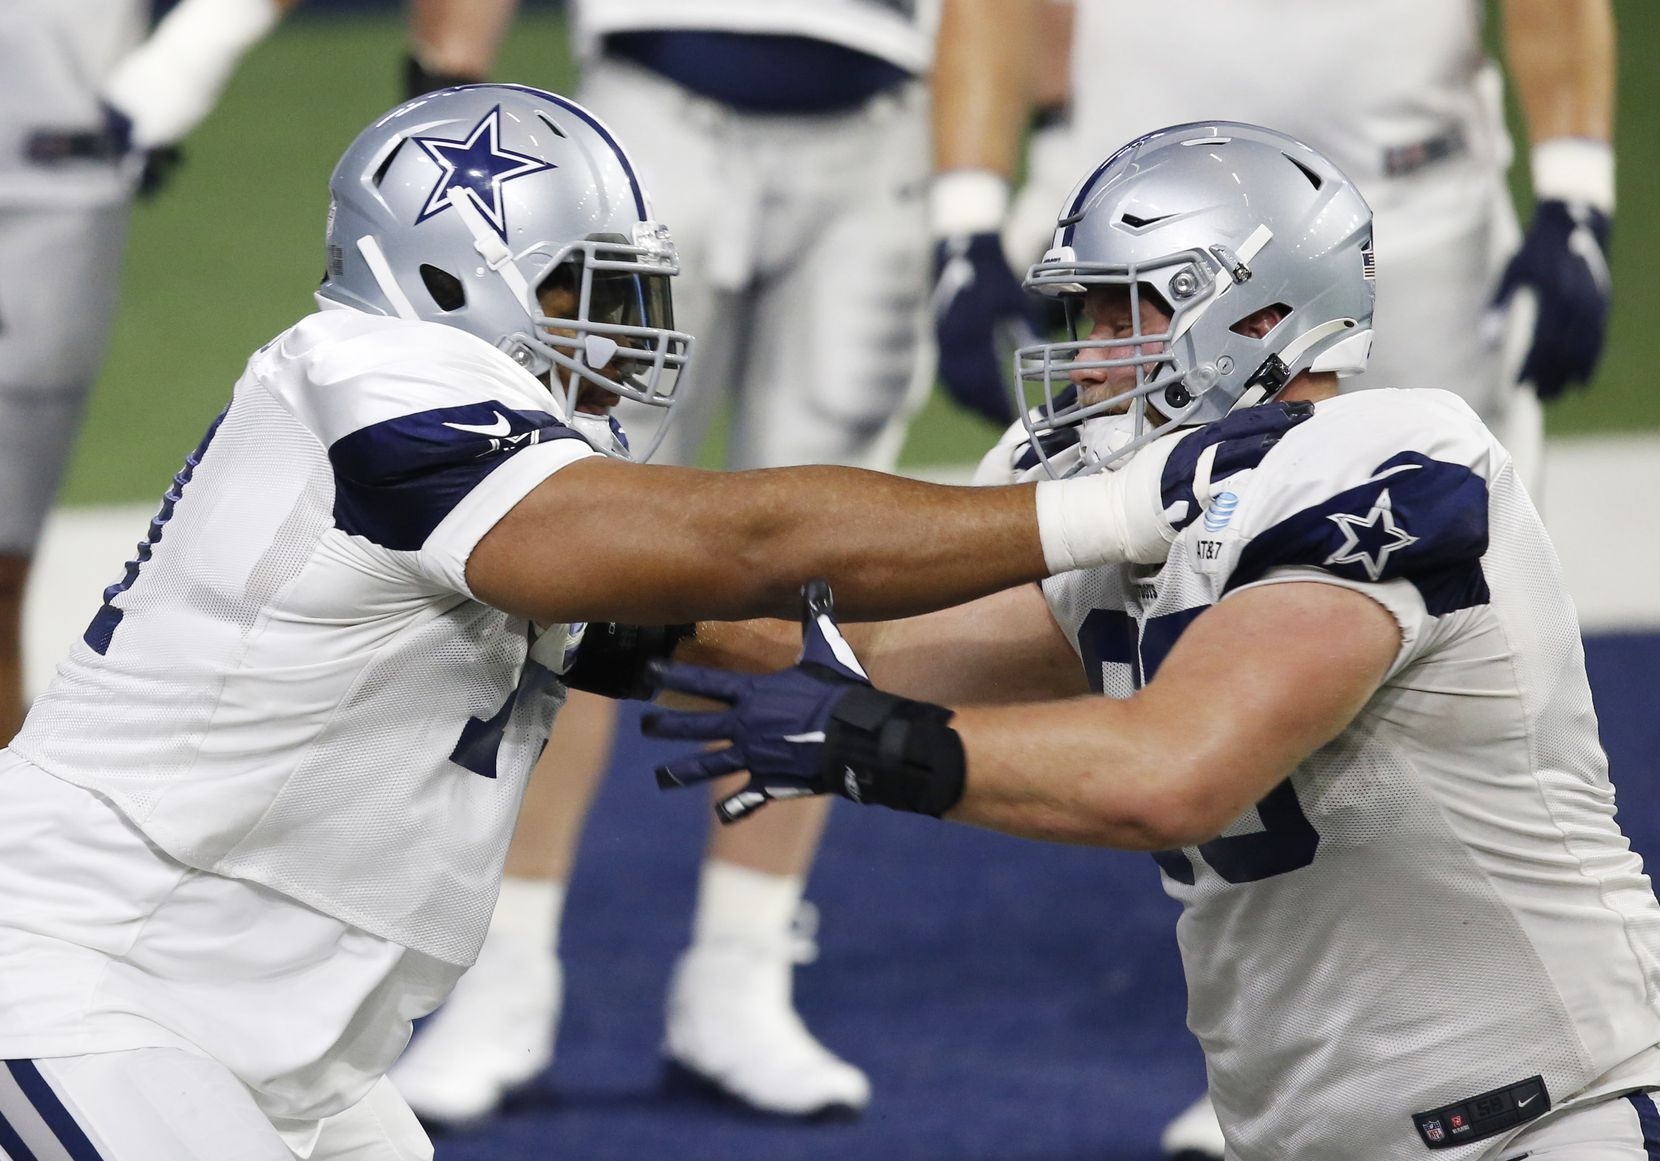 Dallas Cowboys offensive tackle La'el Collins (71) blocks Dallas Cowboys center Tyler Biadasz (63) in practice during training camp at the Dallas Cowboys headquarters at The Star in Frisco, Texas on Thursday, August 27, 2020. (Vernon Bryant/The Dallas Morning News)